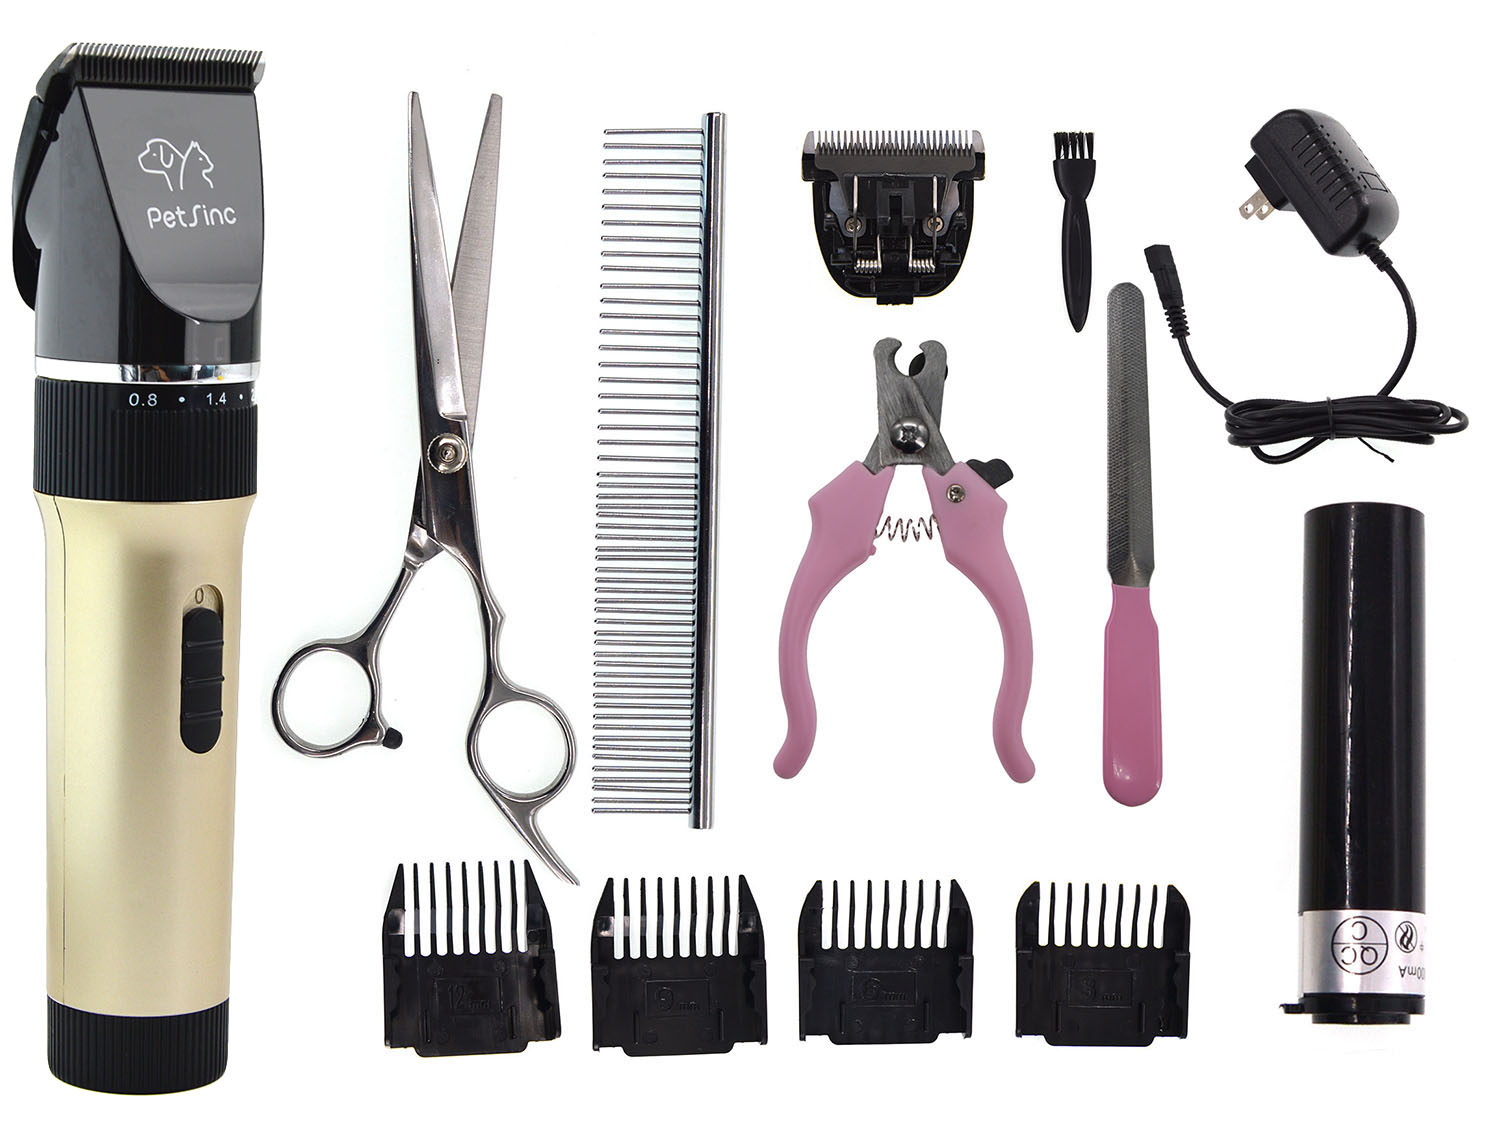 Cat Grooming Kit - Dog Grooming Kit - Pet Accessories - Pet Store - Pet supplies